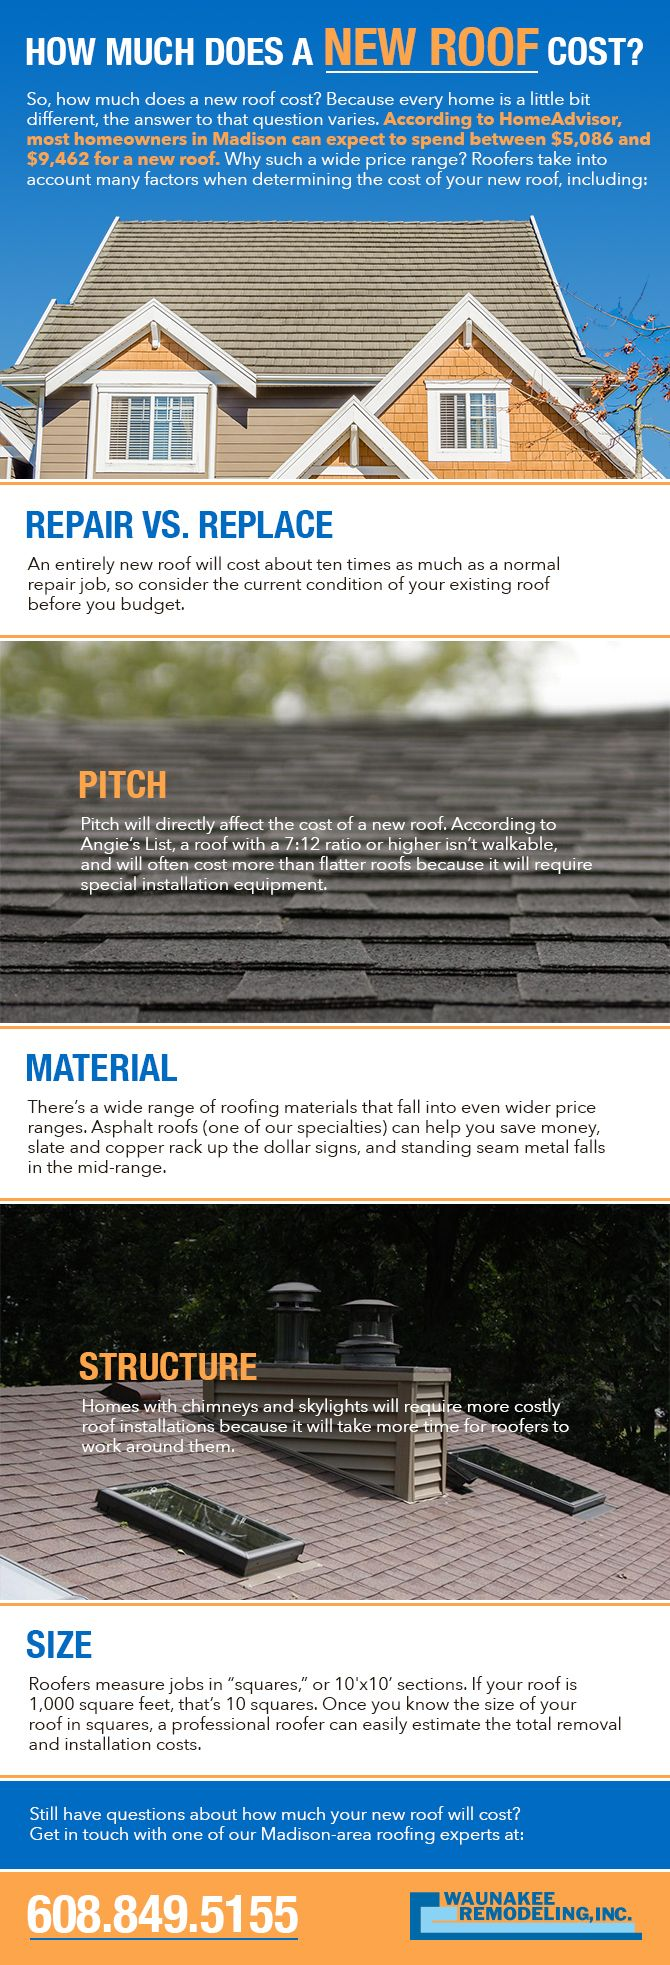 How Much Does A New Roof Actually Cost?